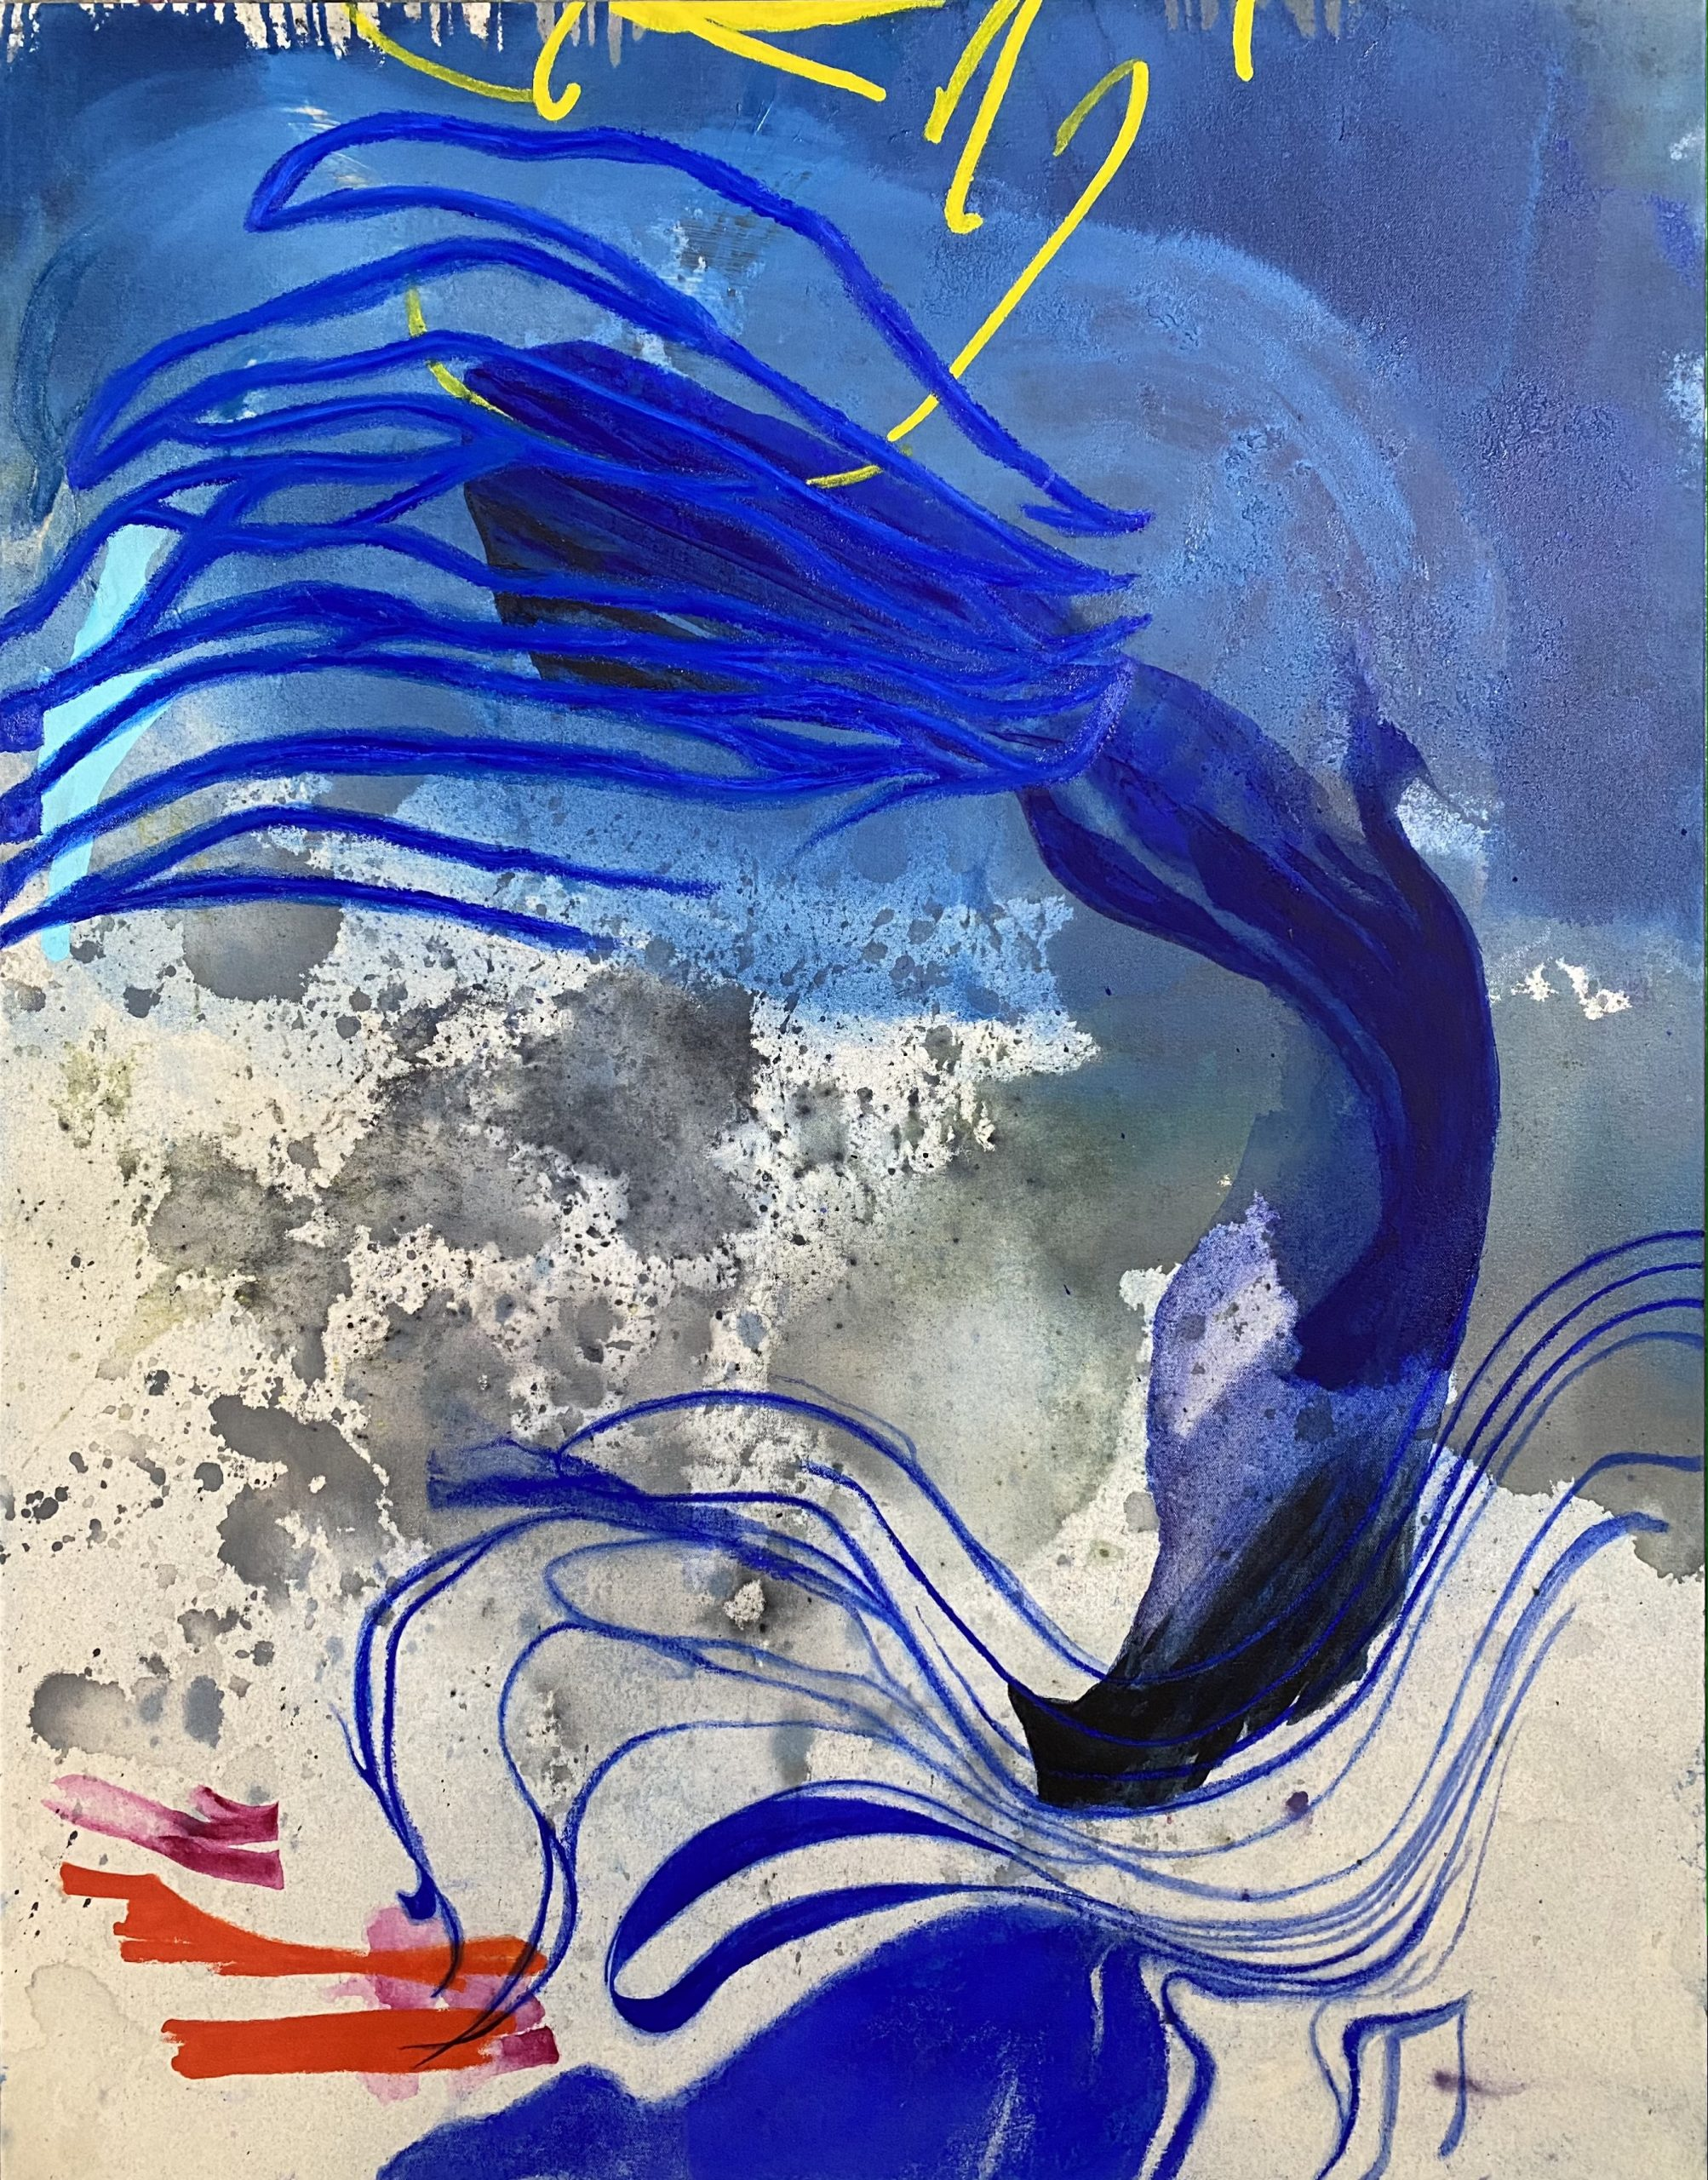 Contemporary-Abstract-Painting-Modern-Graffiti-Street-Art-Urban-Industrial-Blue-Wall-Laura-Letchinger_FLOW